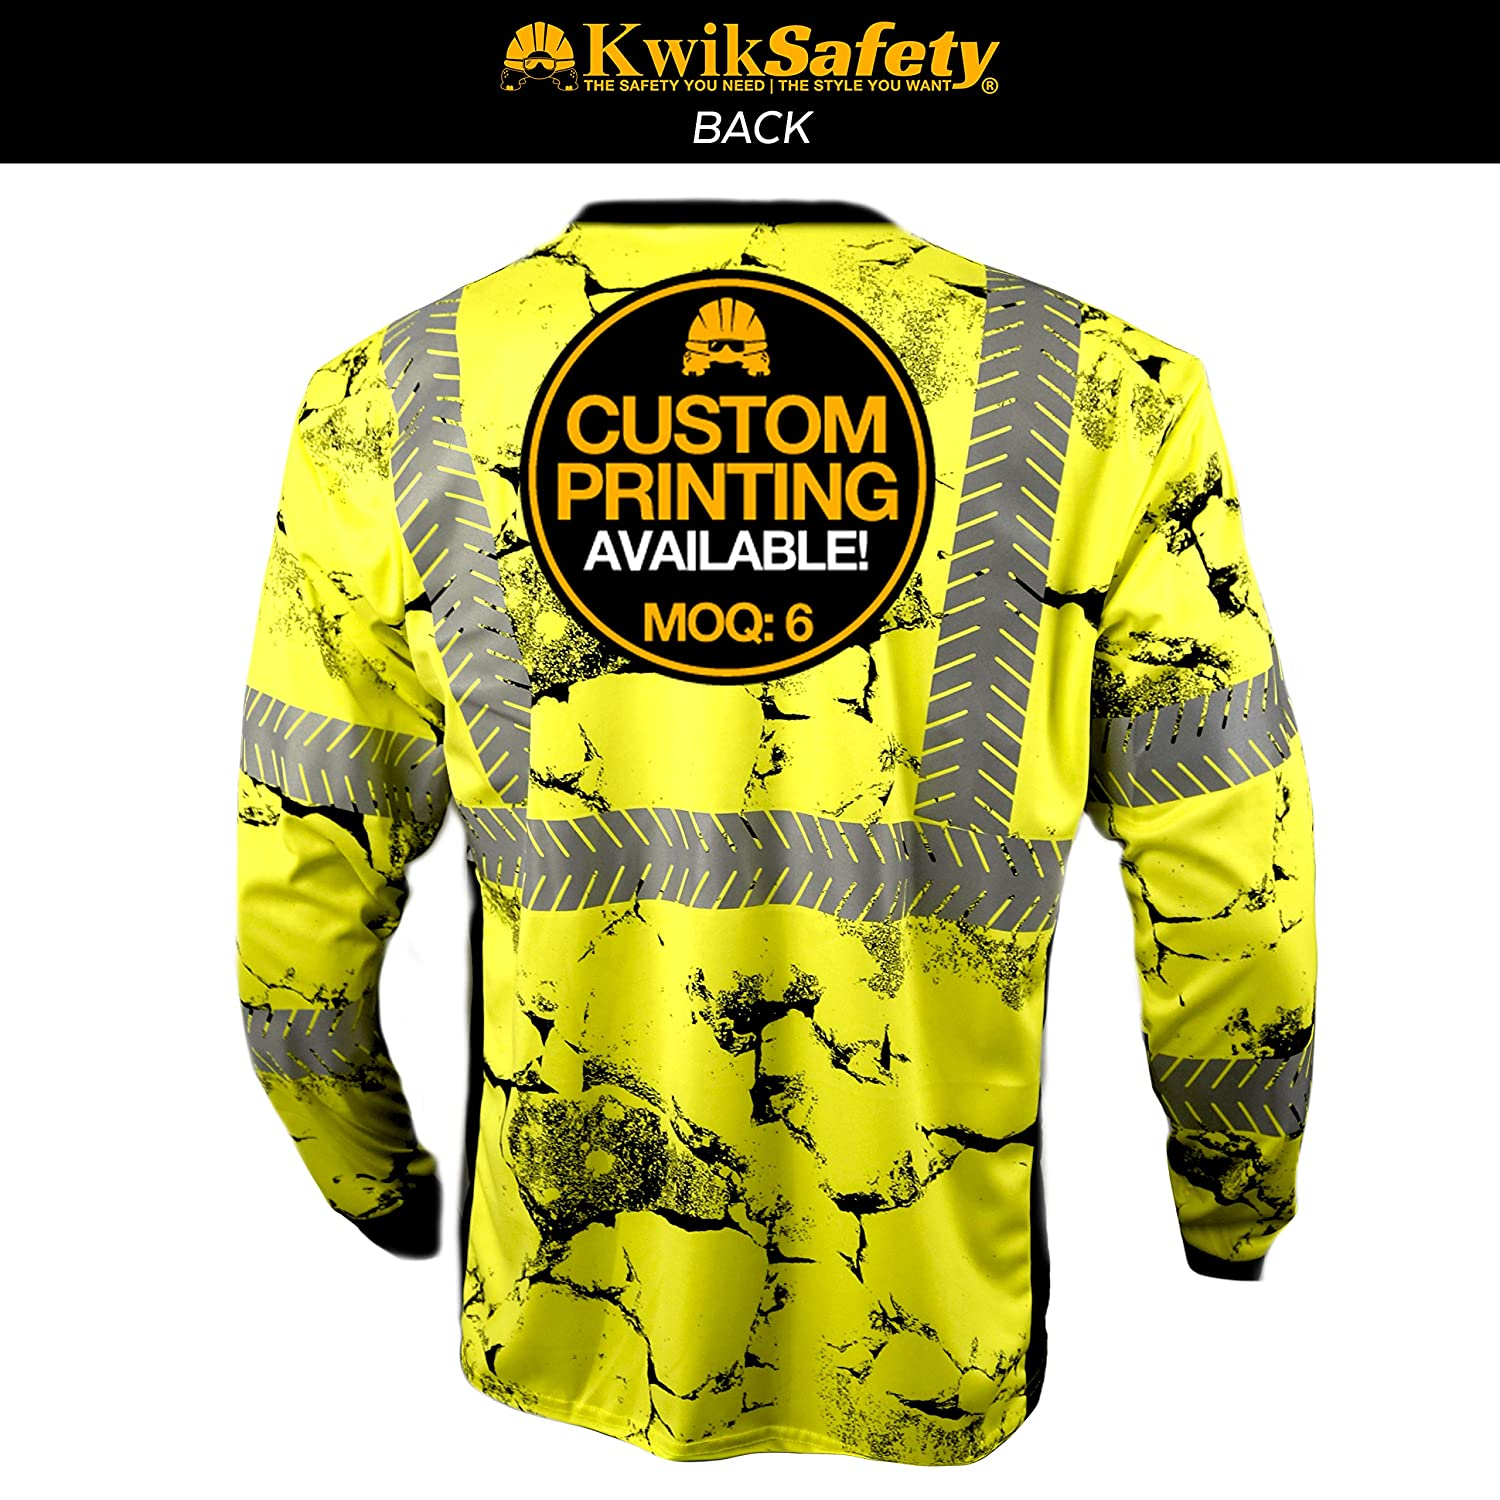 Class 3 ANSI High Visibility Safety Shirt Tape Construction Security Hi Vis Clothing Men Long Sleeve Orange Black 2XL Charlotte, NC KwikSafety with POCKET and Solid Reflective OPERATOR